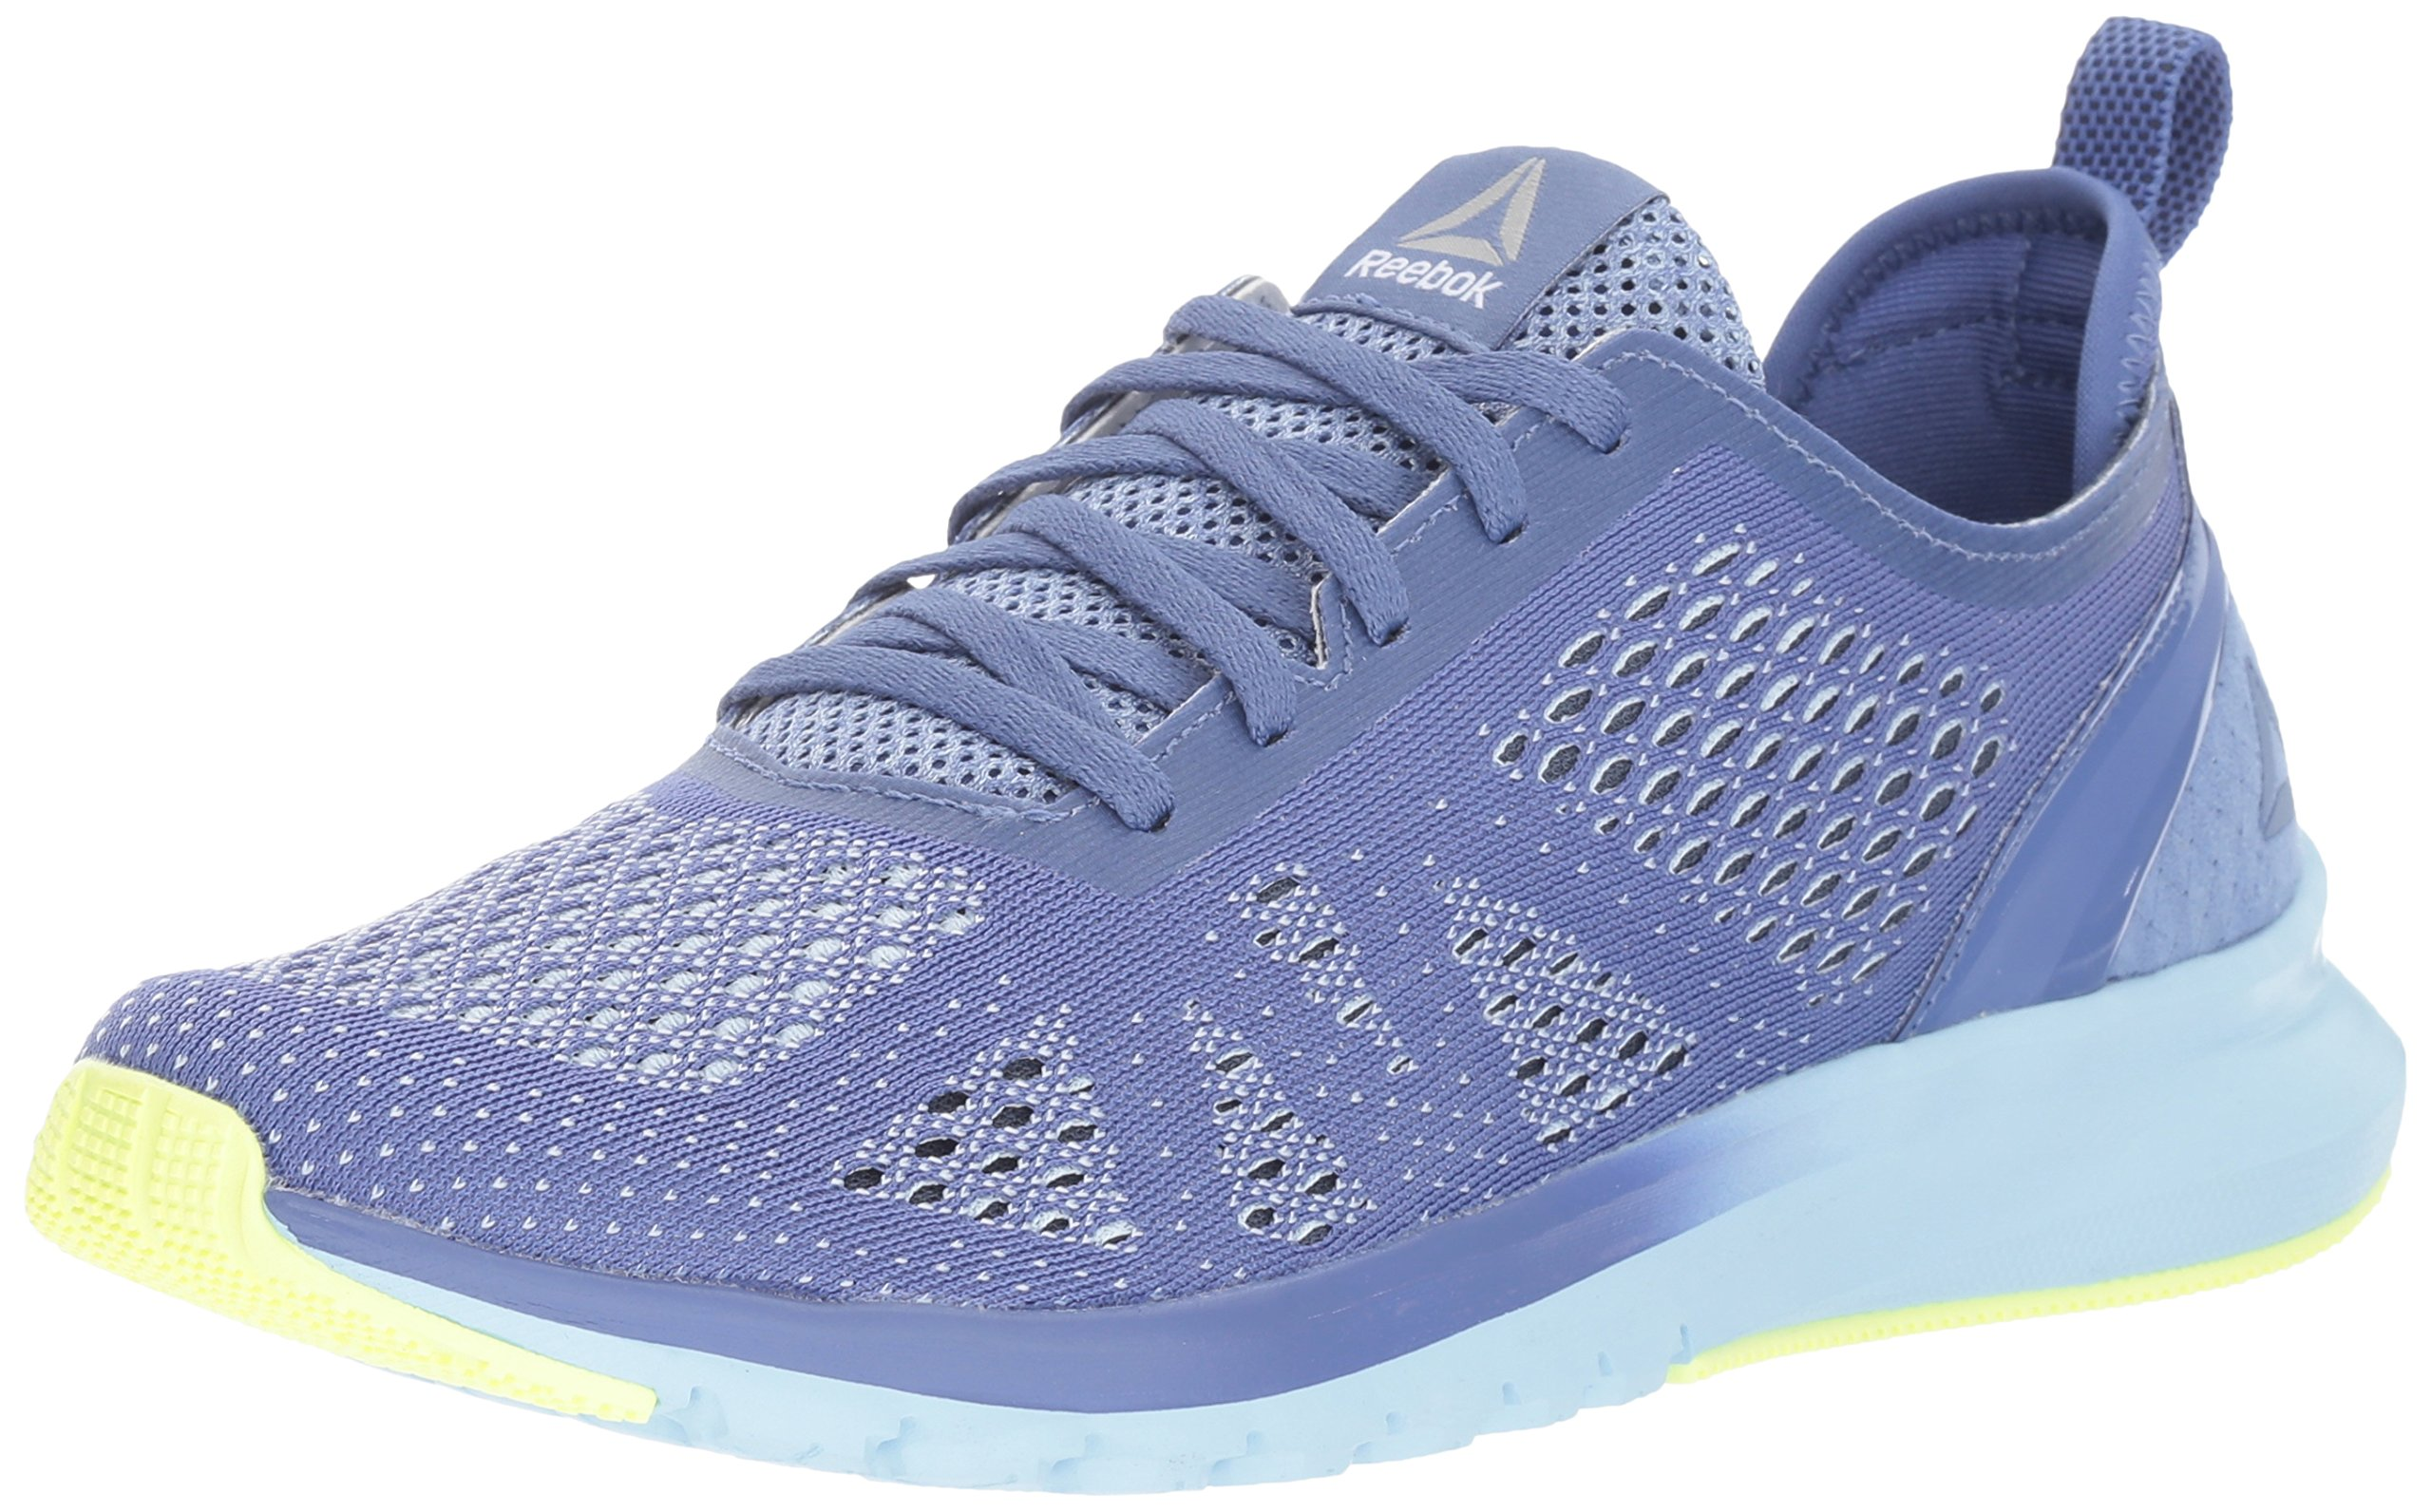 Reebok Women's Print Smooth Clip Ultk Track Shoe, lilac shadow/fresh blue/electric flash/white/smoky indigo, 9.5 M US